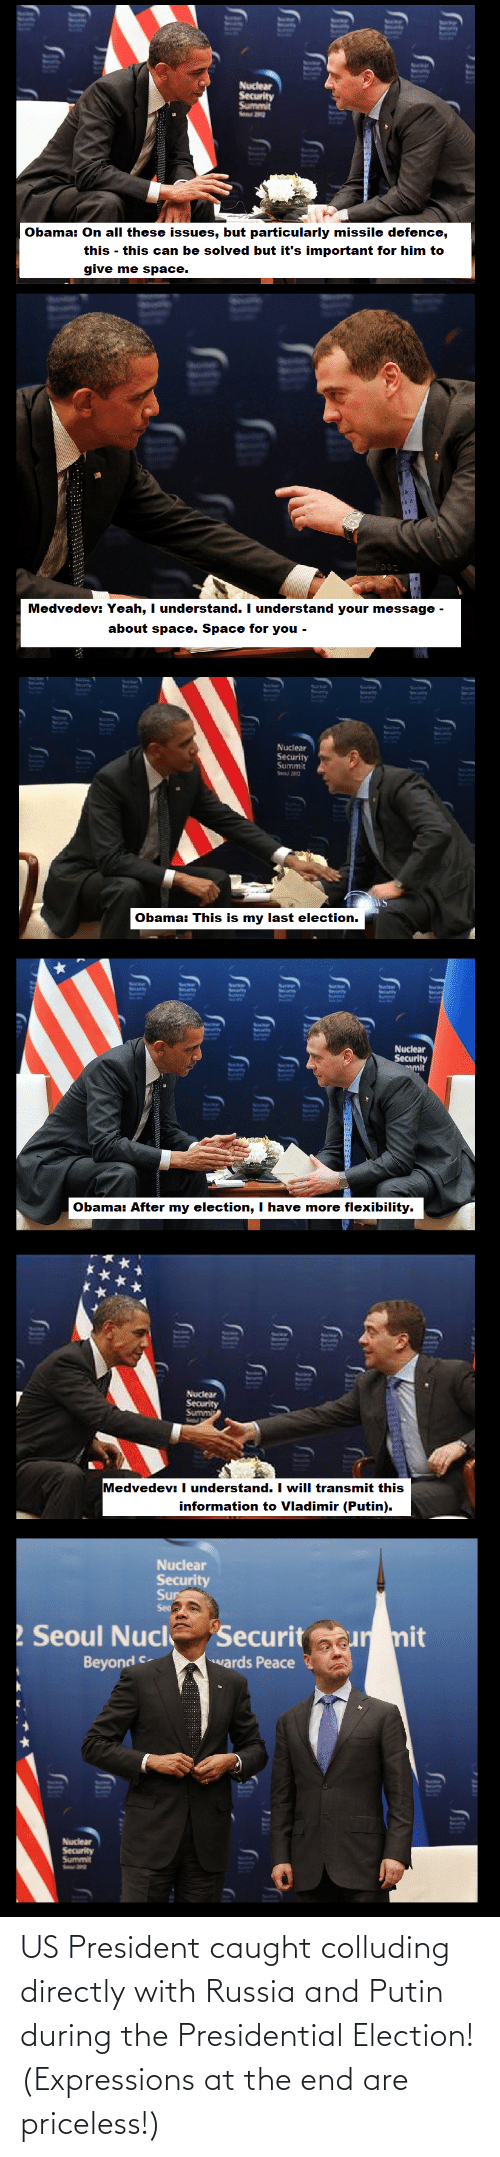 Give Me Space: Nuclear  Security  Summit  Se 2  Obama: On all these issues, but particularly missile defence,  this - this can be solved but it's important for him to  give me space.  Medvedev: Yeah, I understand. I understand your message -  about space. Space for you -  Nuclear  Security  Summit  Seoul 2012  Obama: This is my last election.  Nuclear  Security  mit  Obama: After my election, I have more flexibility.  Nuclear  Security  Summi  Medvedev:  I understand. I will transmit this  information to Vladimir (Putin).  Nuclear  Security  Sur  Seo  ! Seoul Nucl  Securitur mit  wards Peace  Beyond c-  Nuclear  Security  Summit US President caught colluding directly with Russia and Putin during the Presidential Election! (Expressions at the end are priceless!)